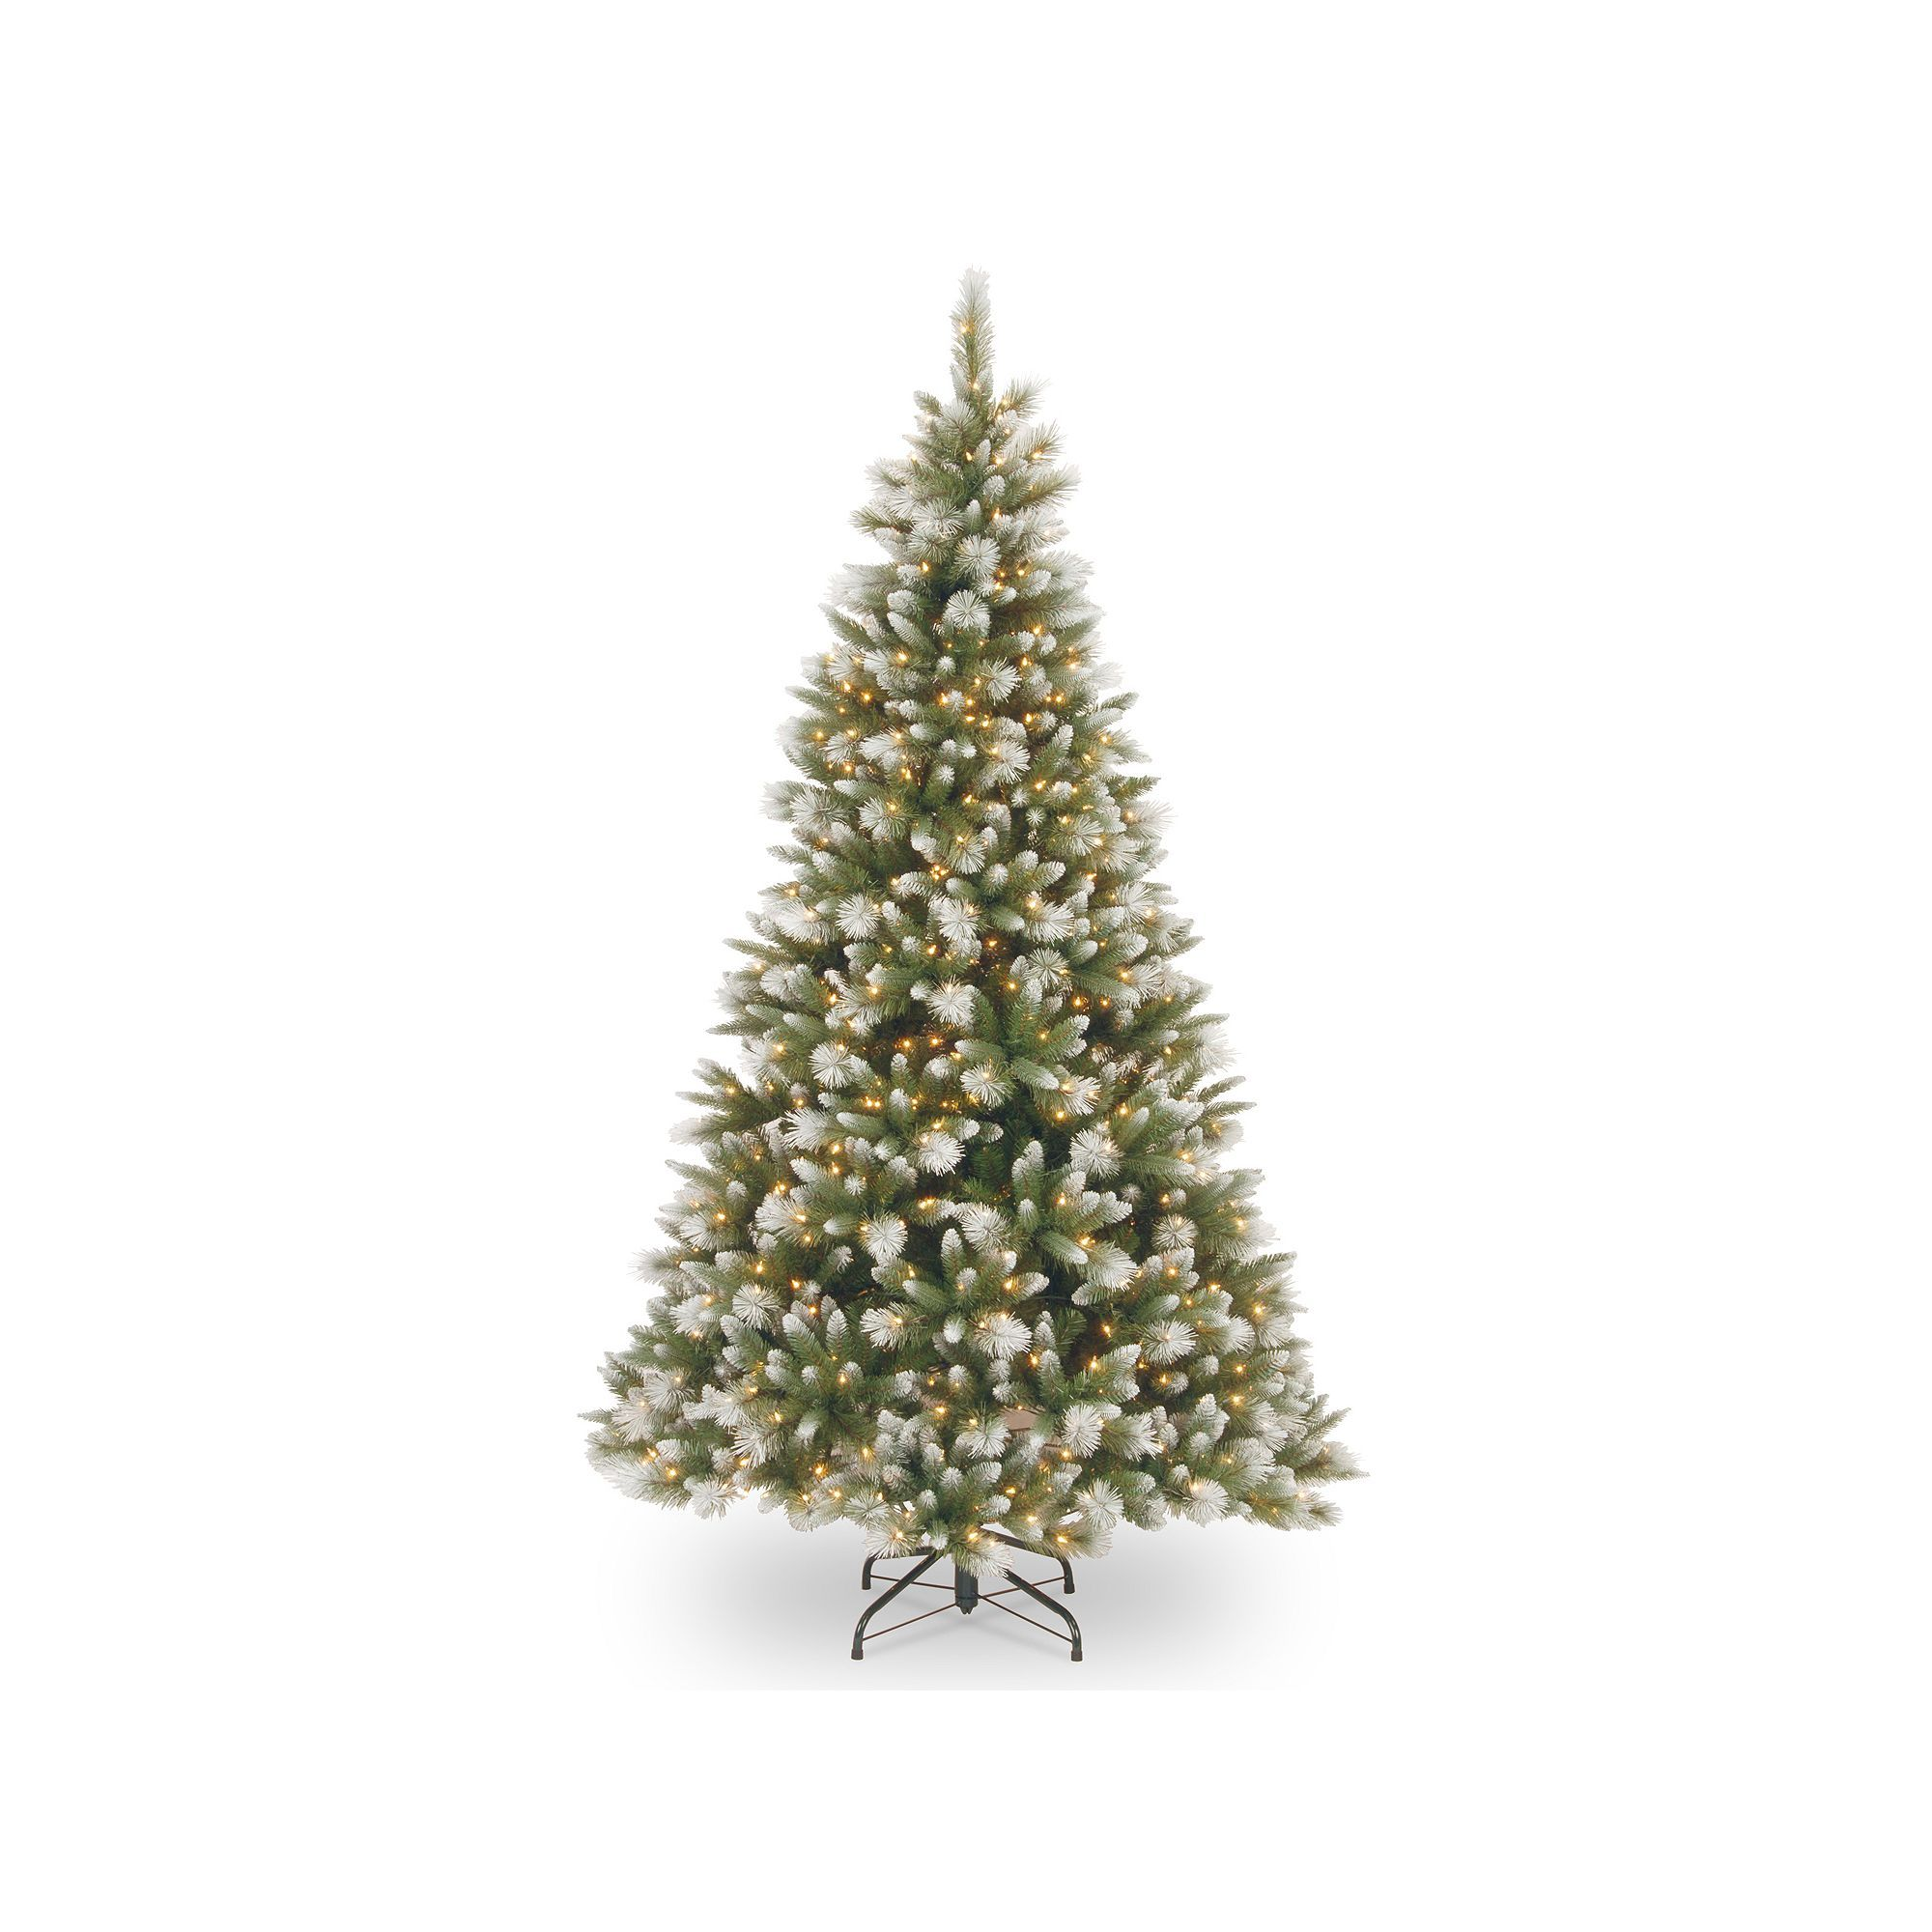 National Tree Company 7.5ft. Frosted Alaskan Pine PreLit